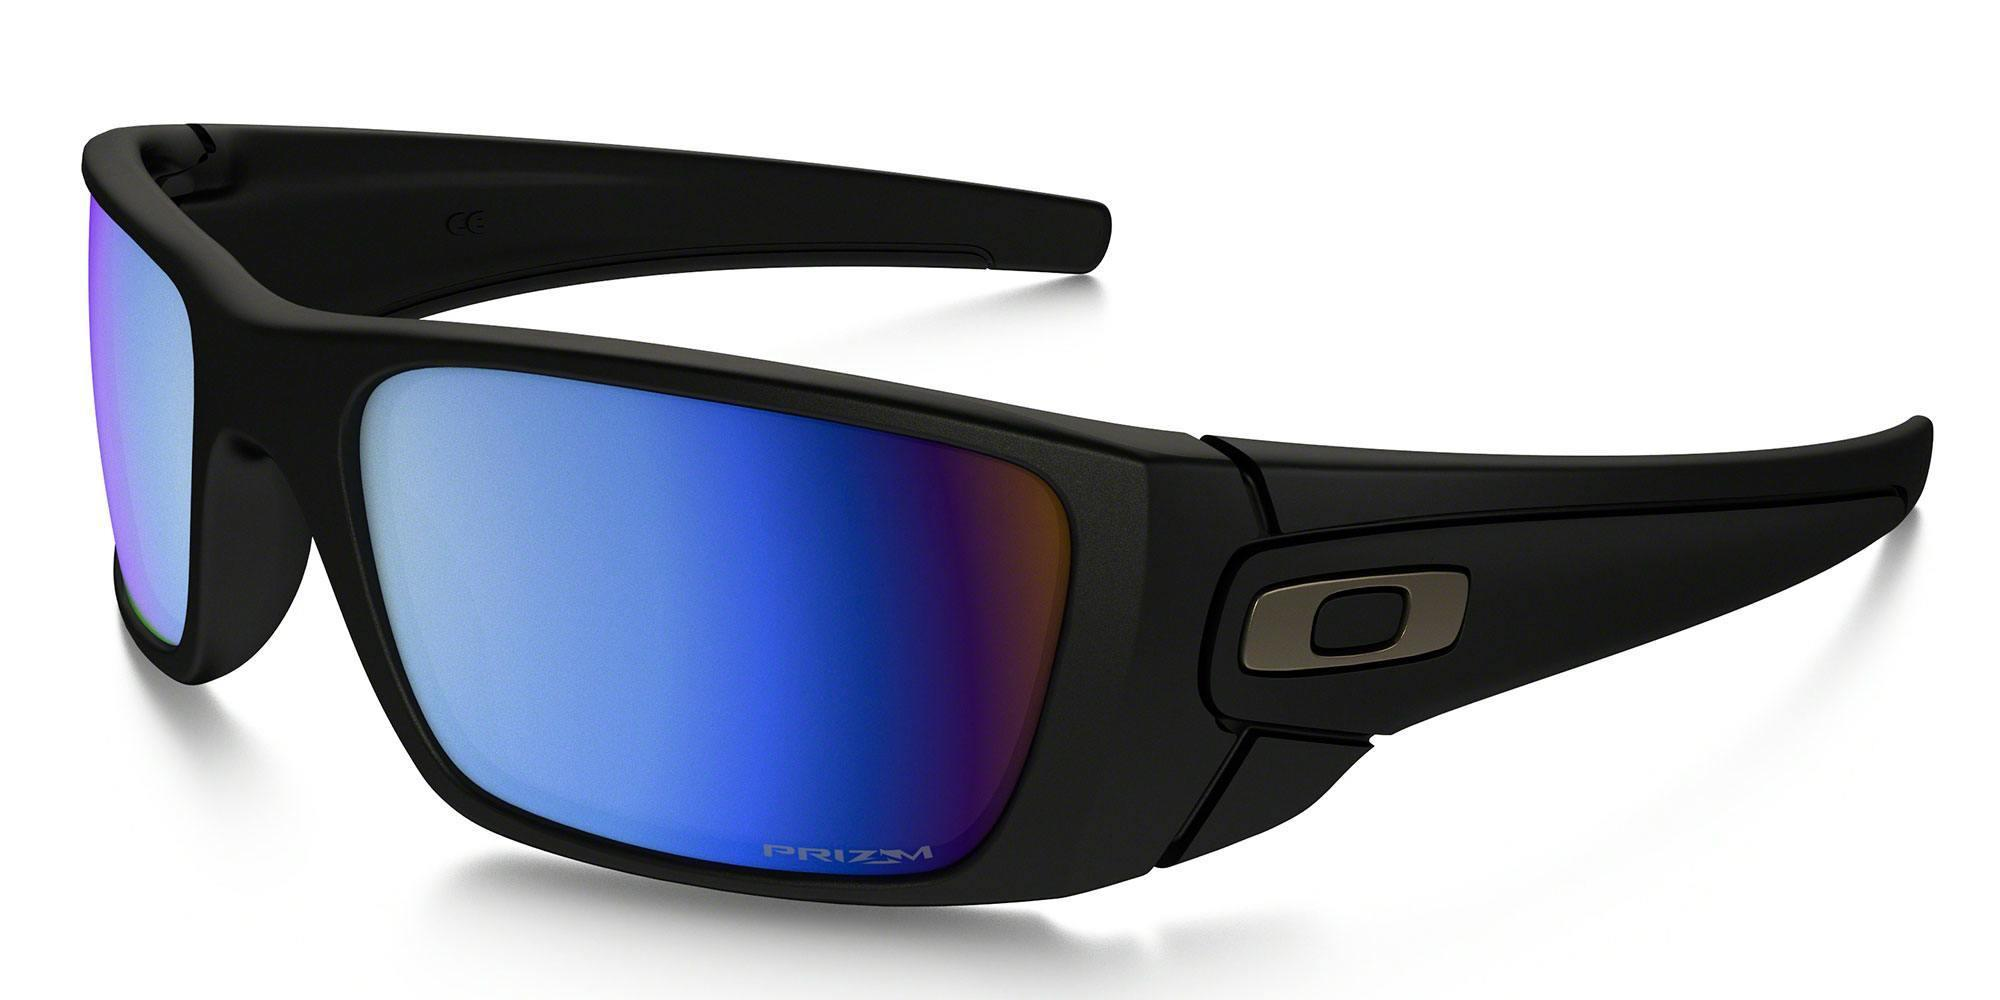 9096D8 OO9096 PRIZM DEEP WATER POLARIZED FUEL CELL , Oakley